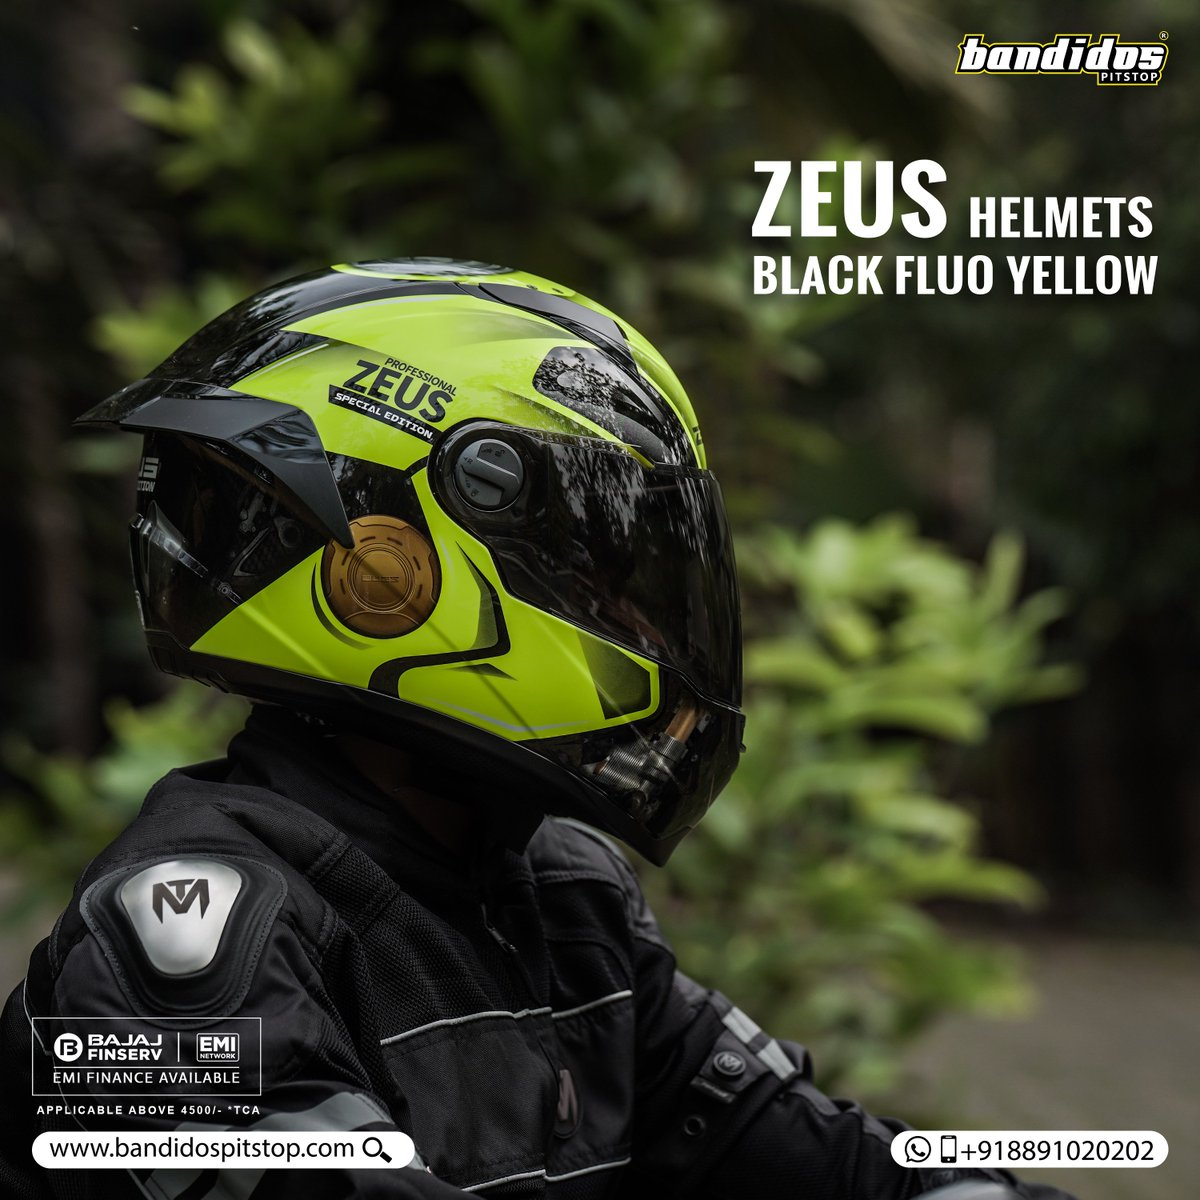 New arrival alert!!!Special edition from Zeus Helmets. Shop at Bandidos Pitstop . . call or WhatsApp us at 8891020202 . . #bandidos #bandidosaccessories #bandidosfamily #zeus #zeushelmets #zeusindia #newproduct #safety #roadrides